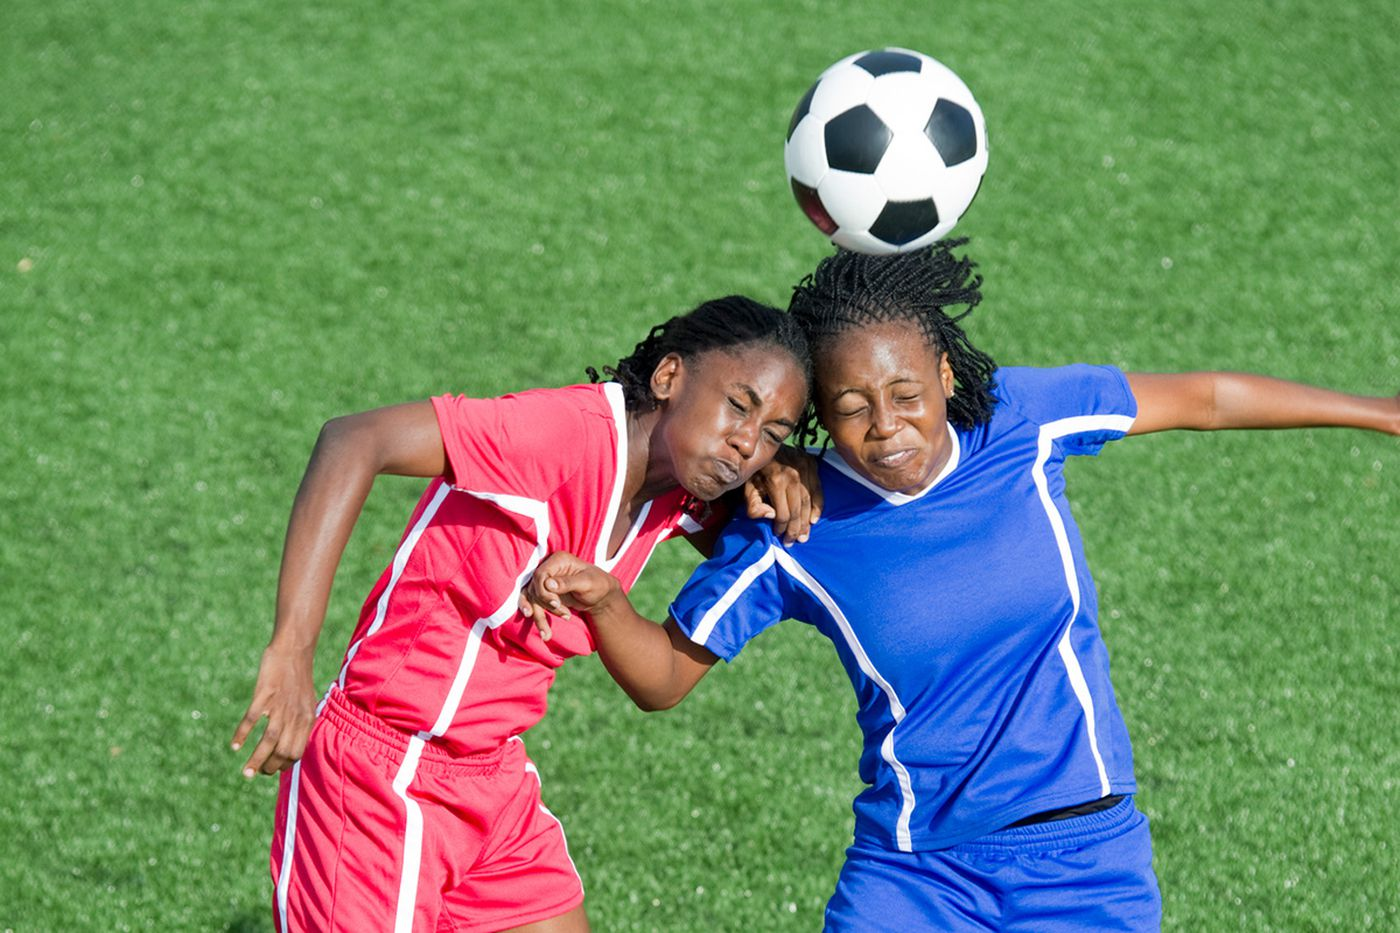 Should kids avoid heading a soccer ball — especially girls?